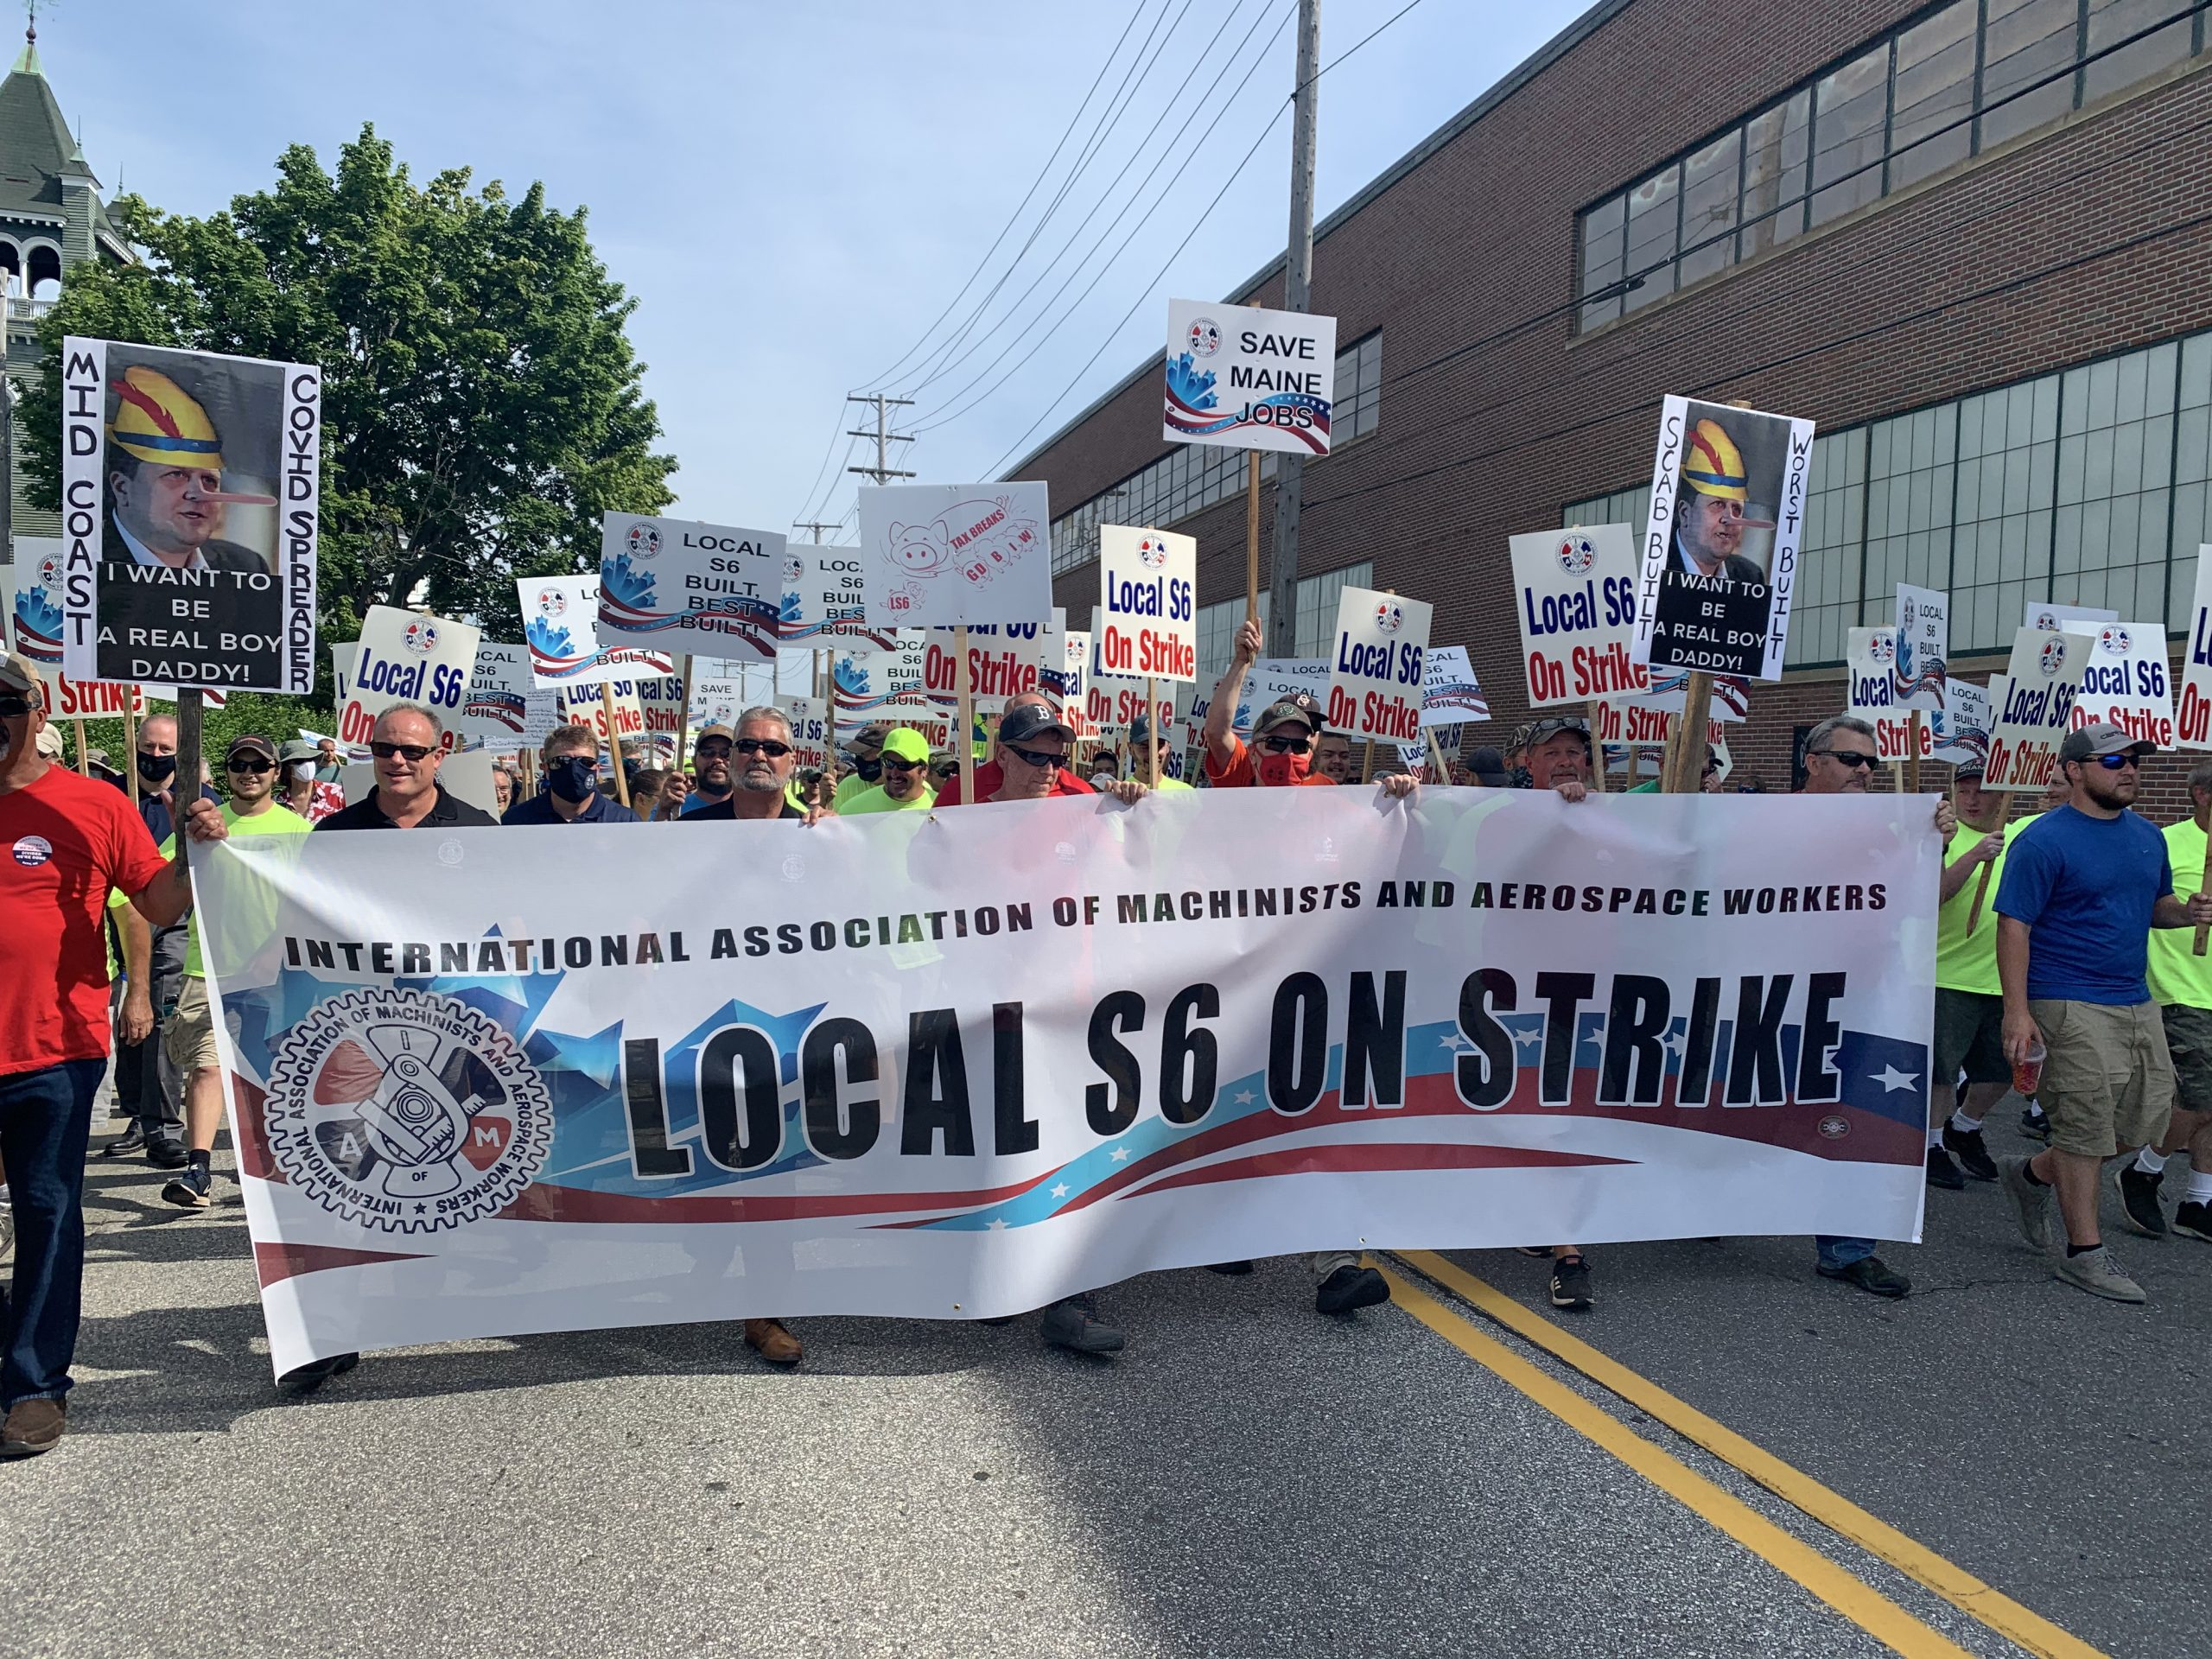 Tell BIW to Return Maine IAM Local S6 Shipbuilders Back to Work